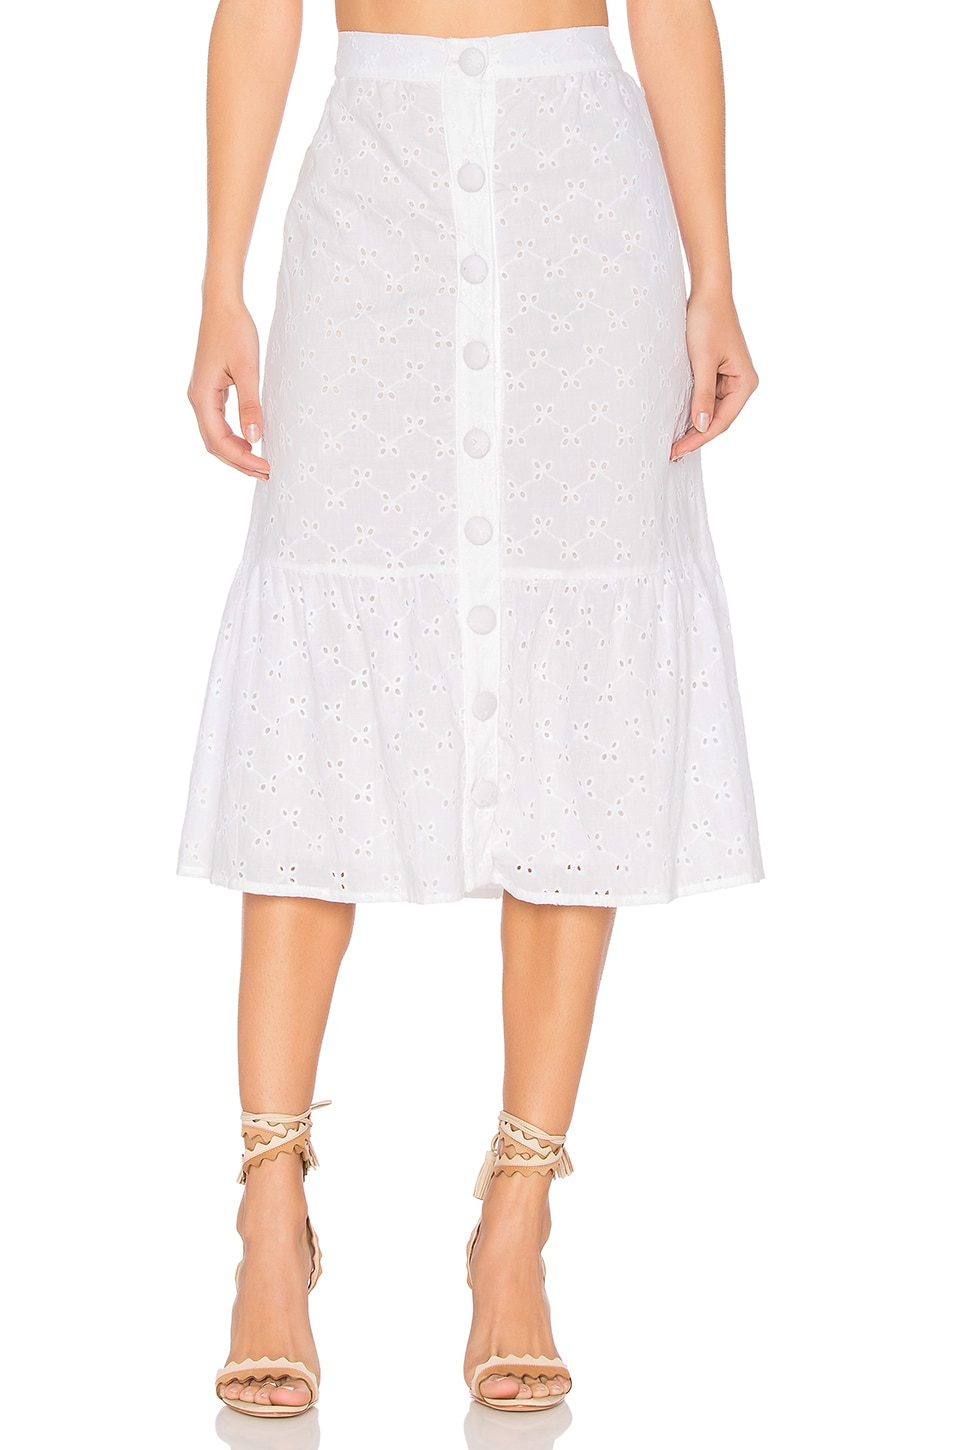 Vine Eyelet Anita Skirt by Clayton